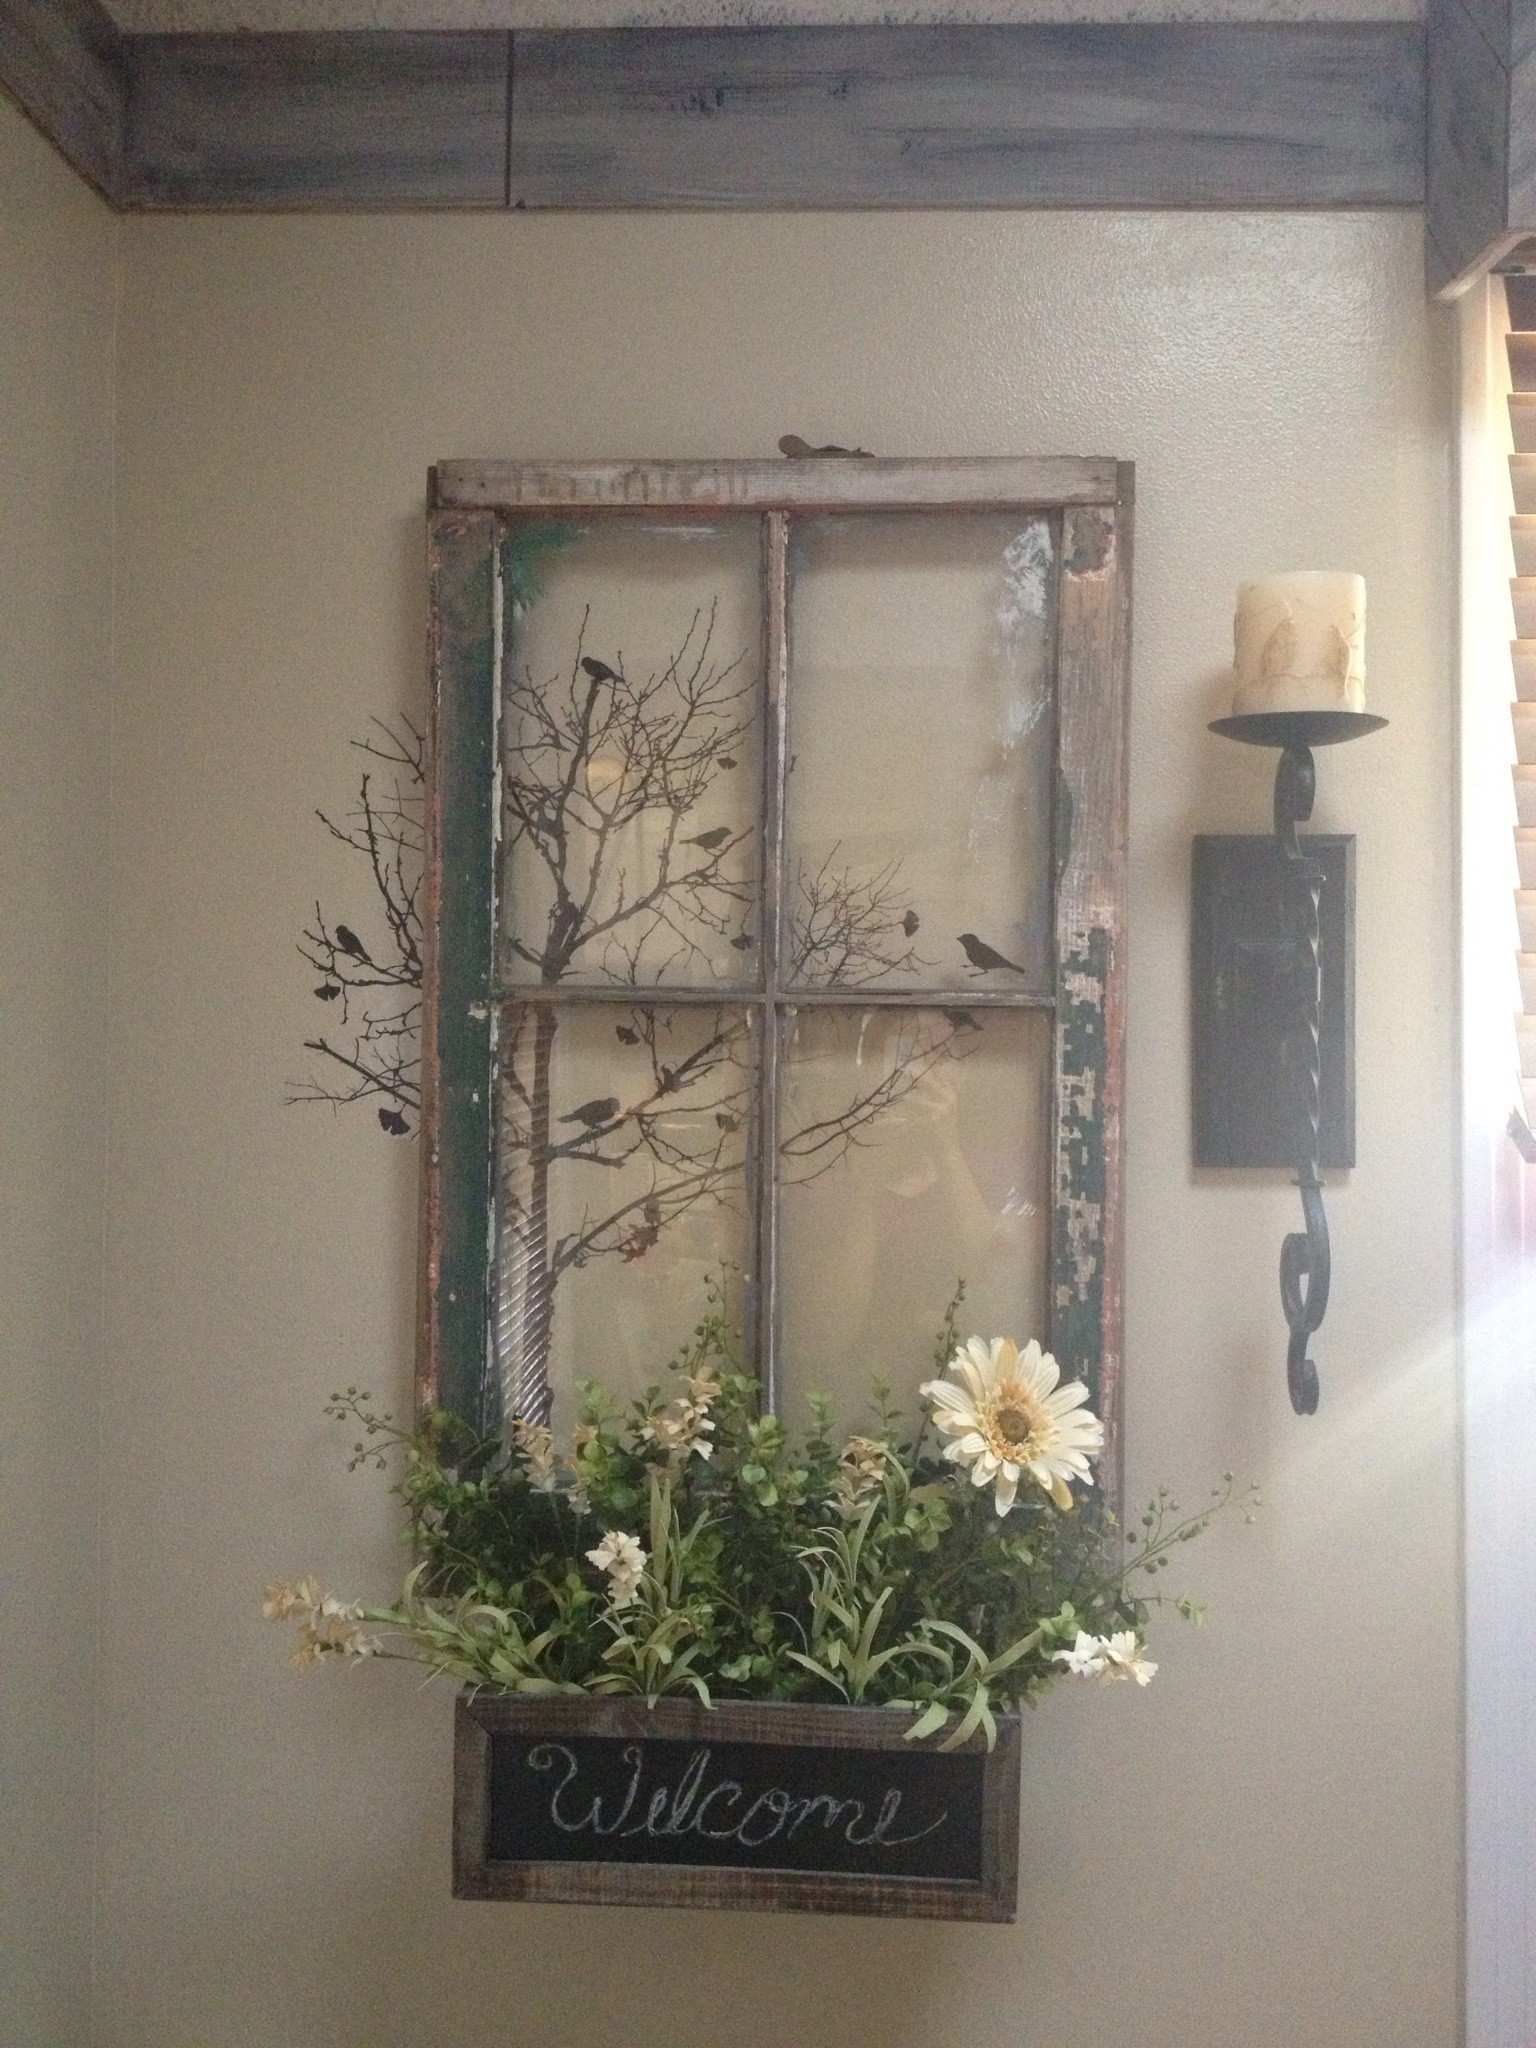 My Vision An Old Window Repurposed Except with A Mirror Instead